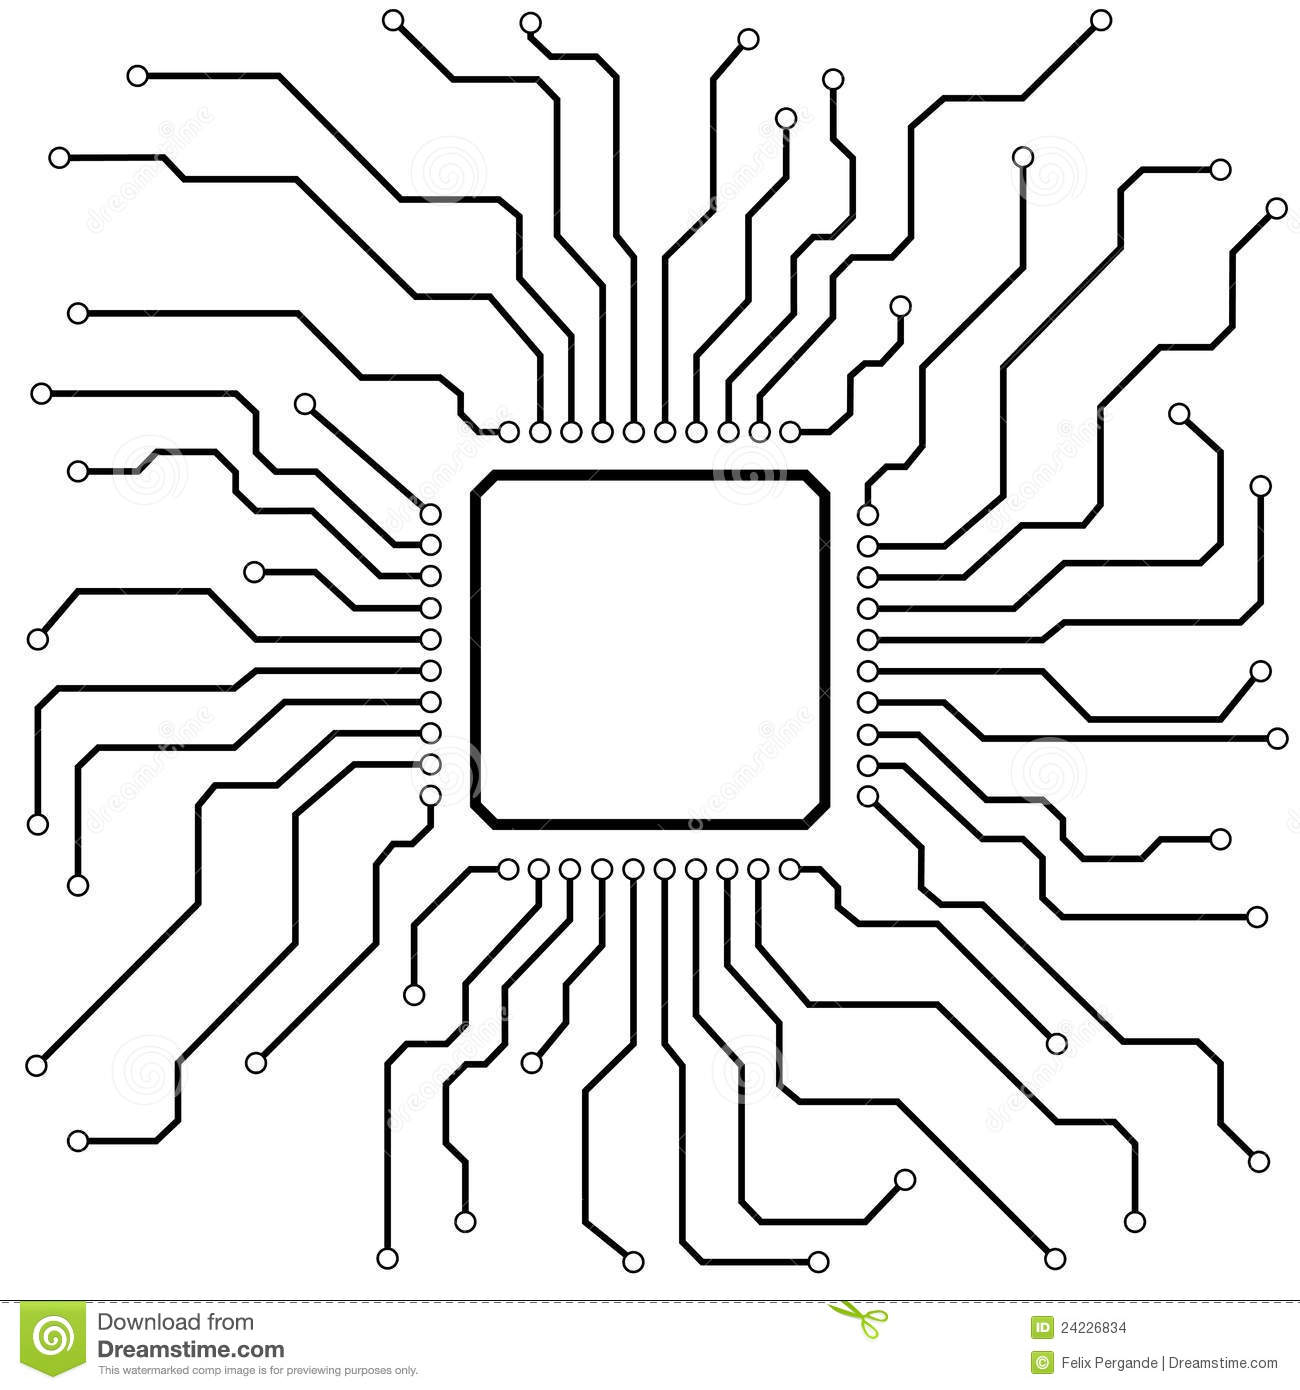 royalty image of blue circuit board